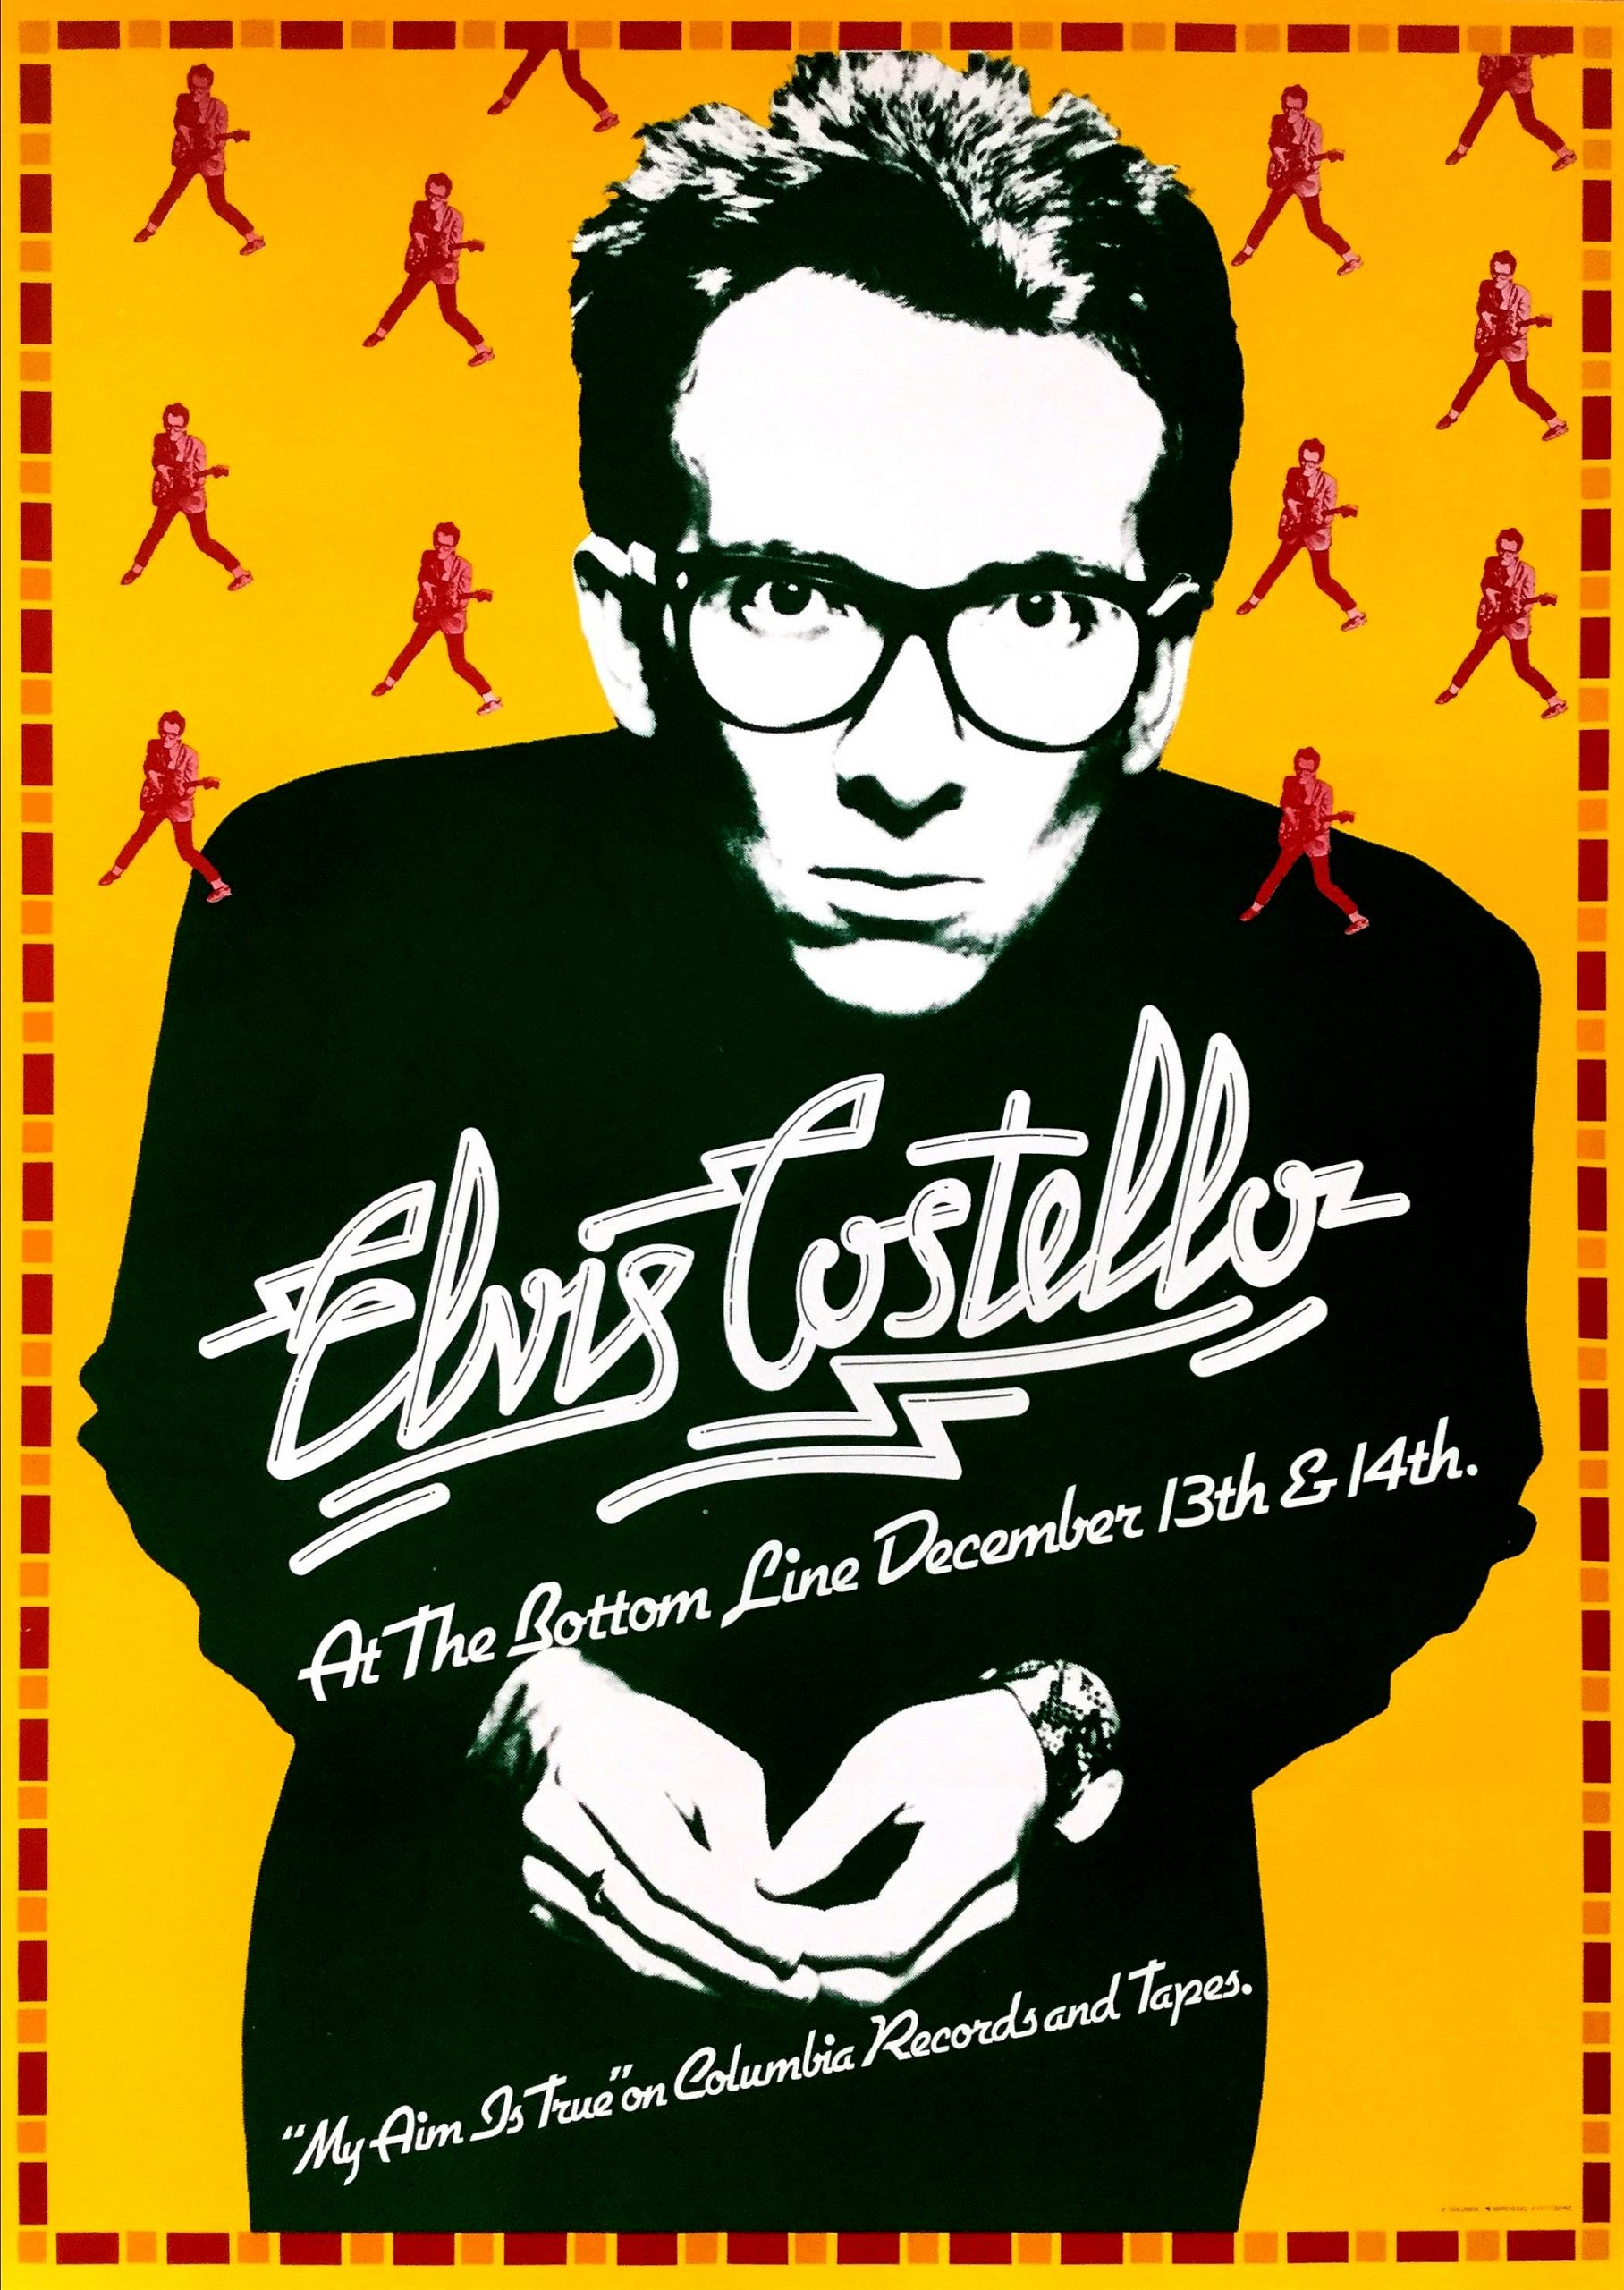 photomontage poster of Elvis Costello in black and white effect against an orange background